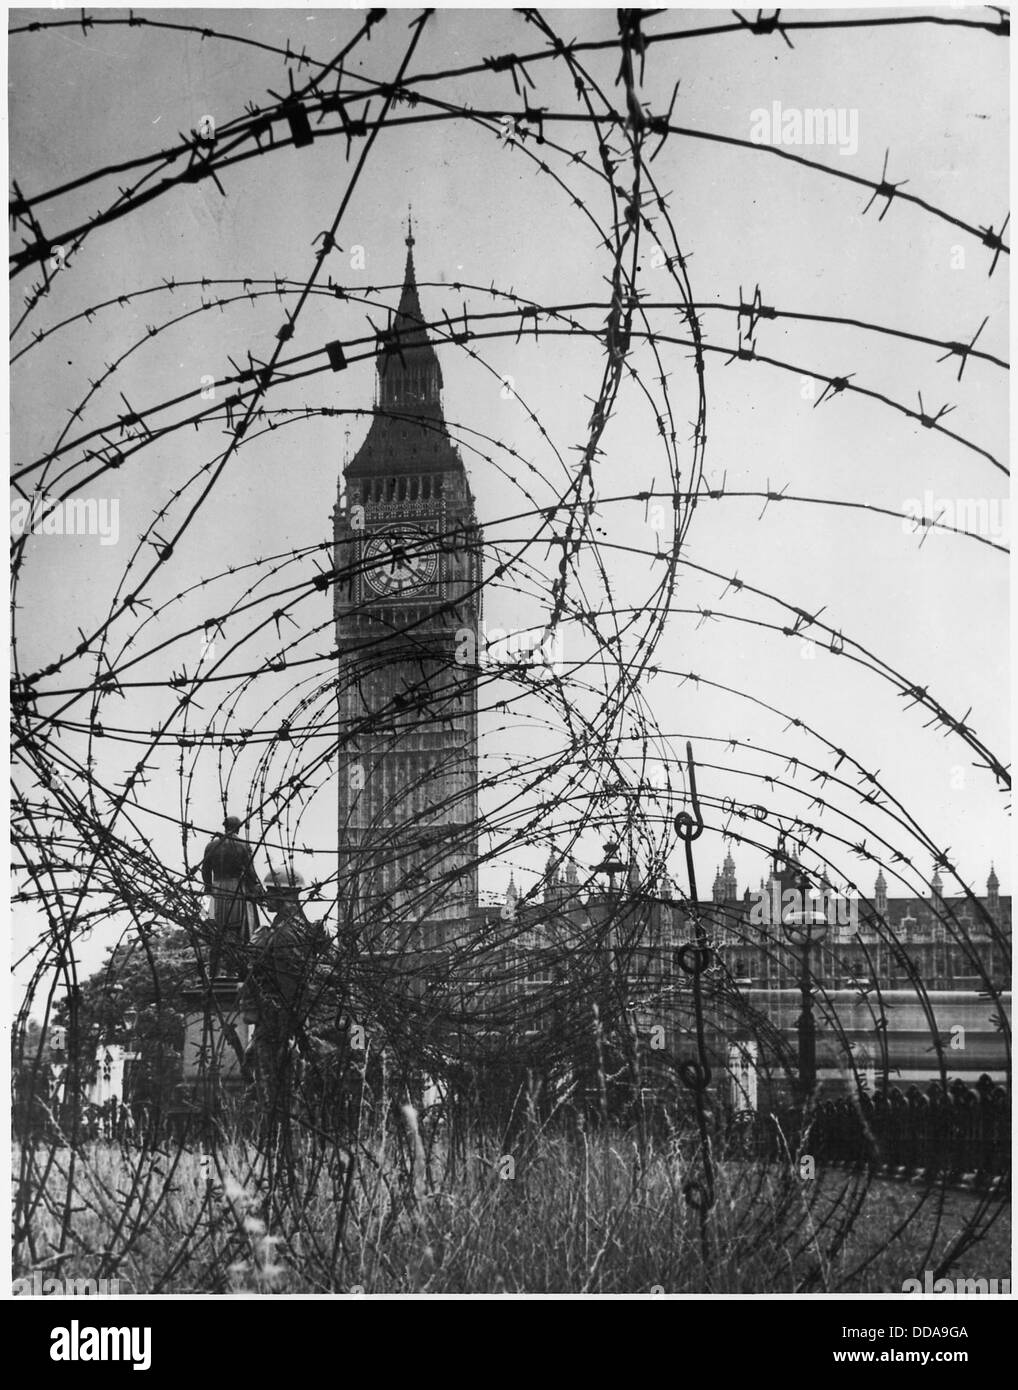 WWII, Europe, London, England, Big Ben with barbed wire entanglement - - 195565 - Stock Image